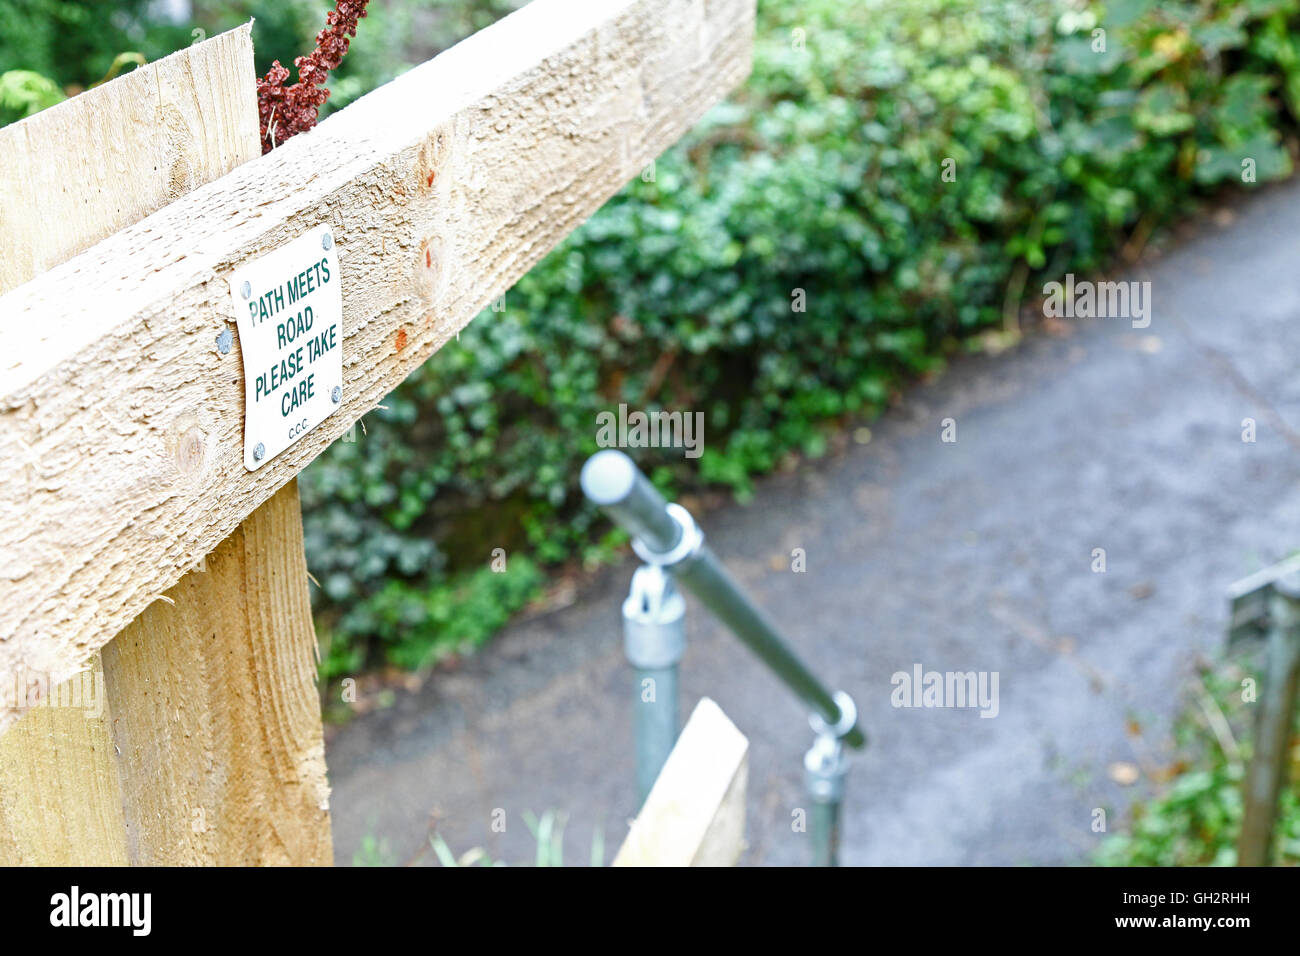 A sign saying 'path meets road, take care' on some steps leading down to a road - Stock Image